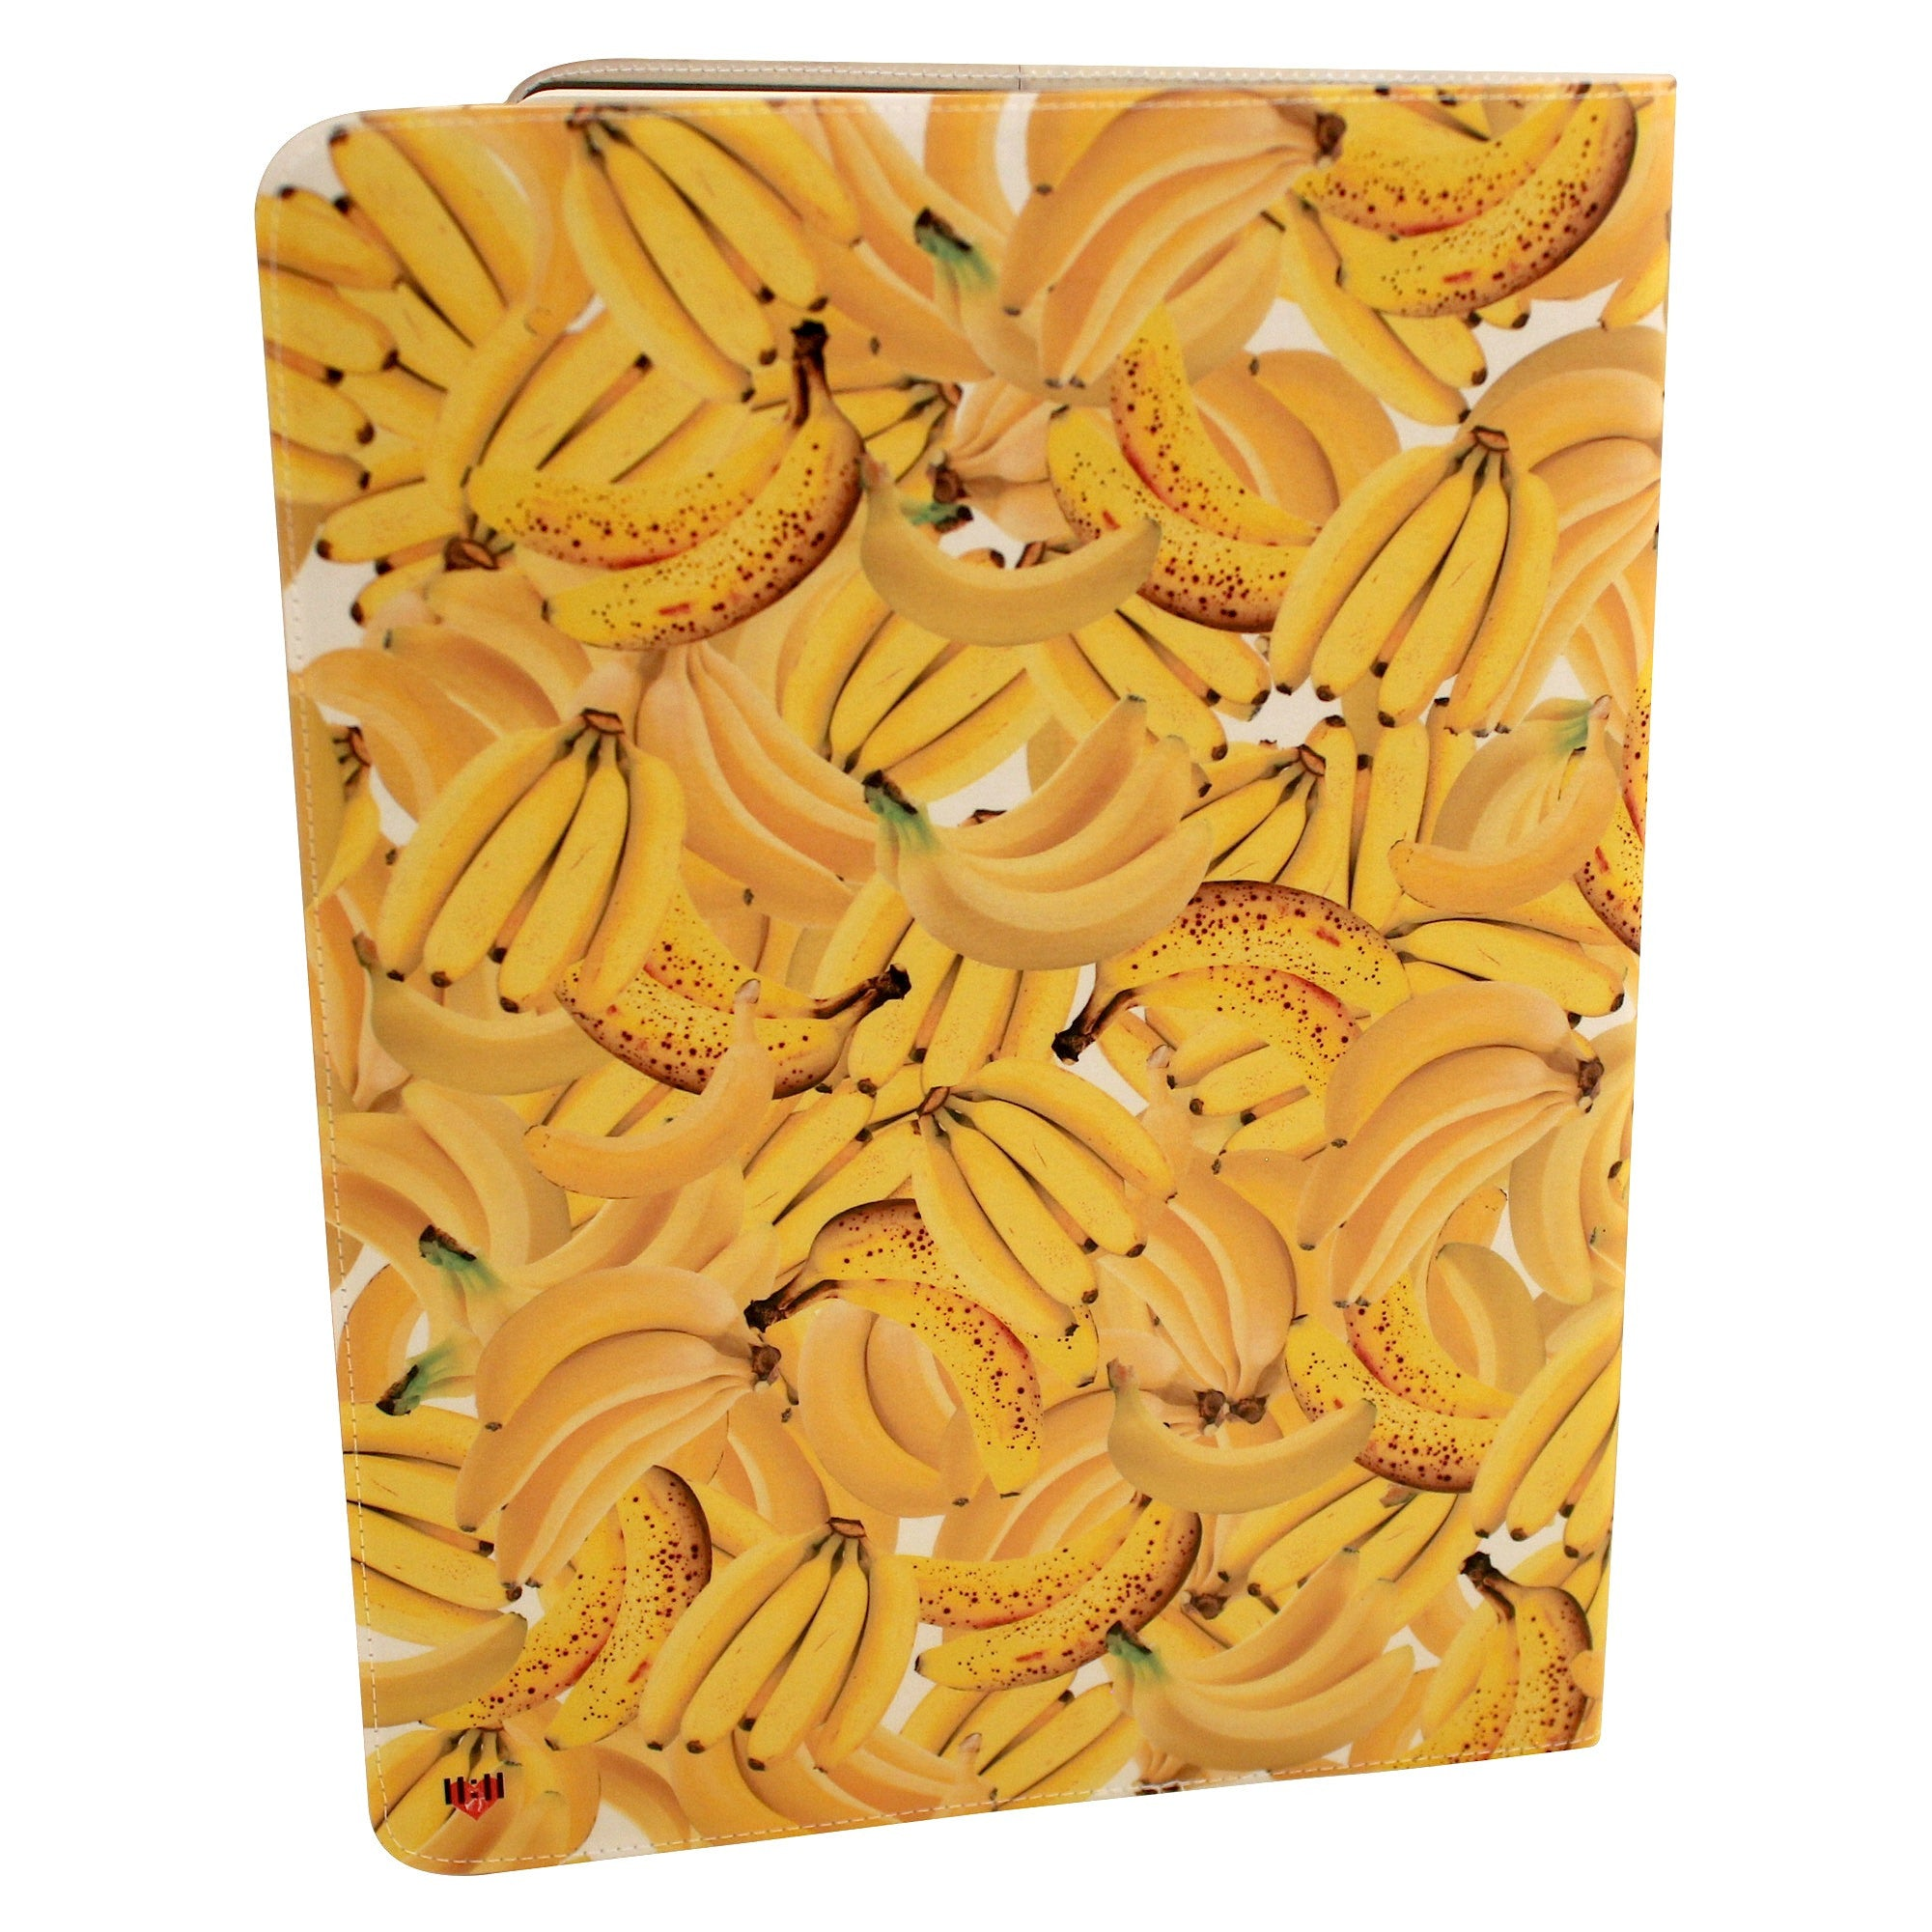 Going Bananas Journal (Diary, Notebook) w/ Extra Large Moleskine Cahier Cover